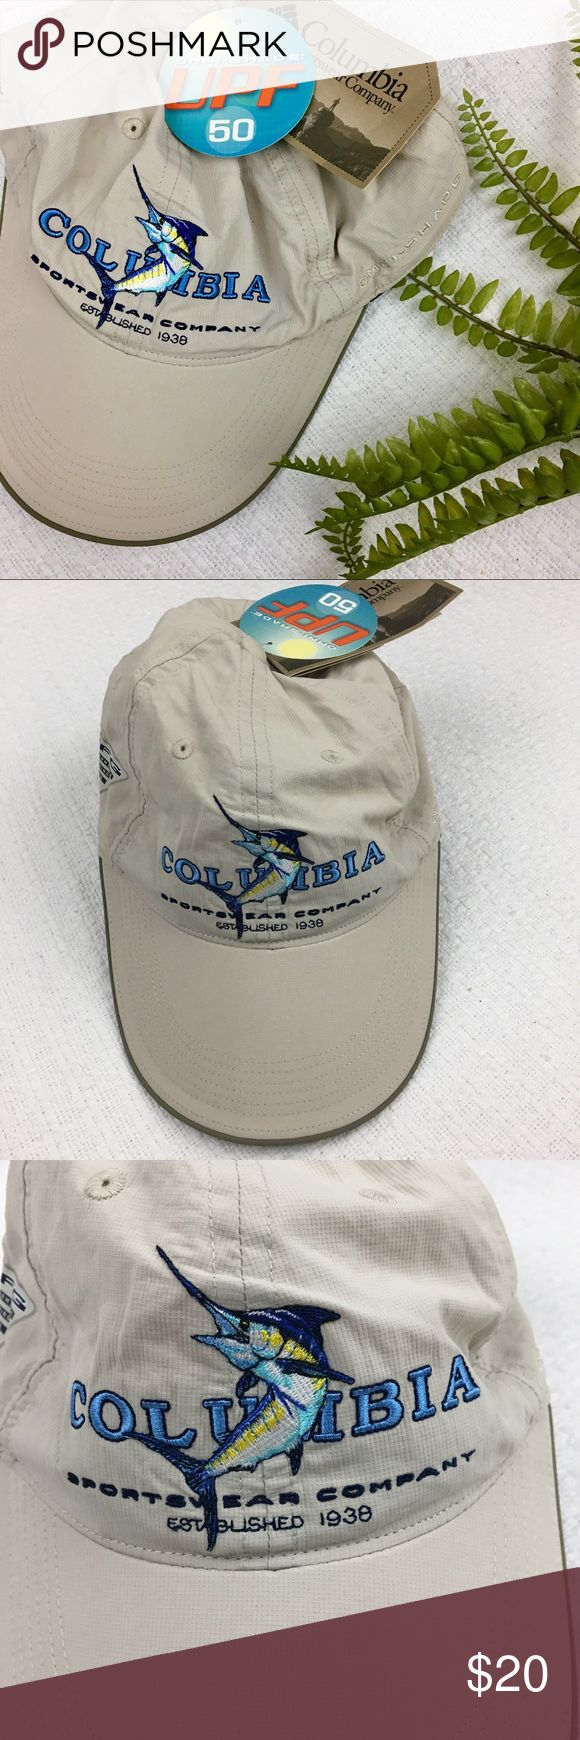 Columbia Omni-Shade Sportswear fishing PFG hat Columbia Omni-Shade Sportswear fishing hat UPF 50 Performance Fishing Gear Adjustable Velcro back It was stored next to a blue top and it brushed up against the left side. Pictured. Columbia Accessories Hats